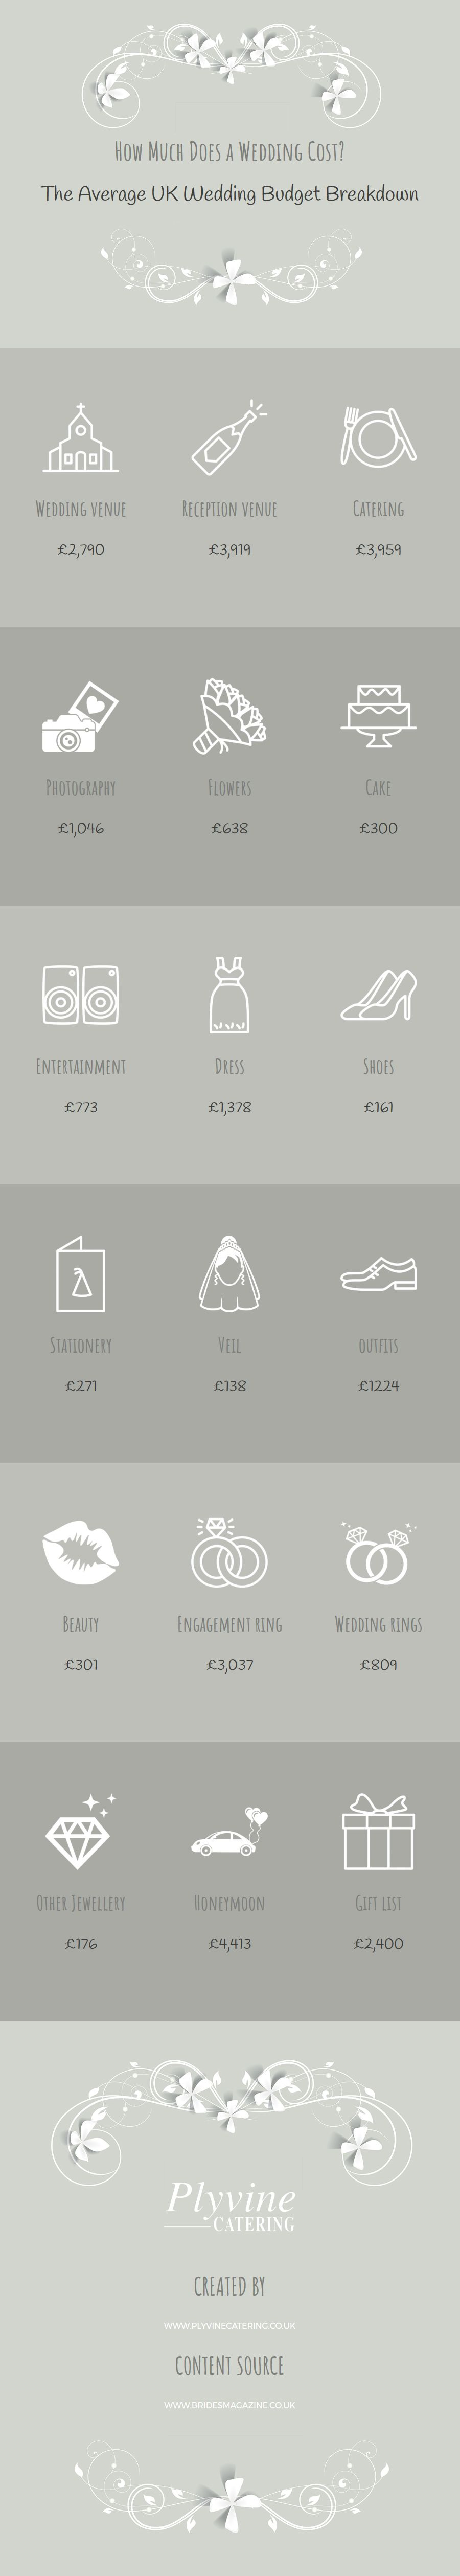 Pin on How Much Does a Wedding Cost? The Average UK